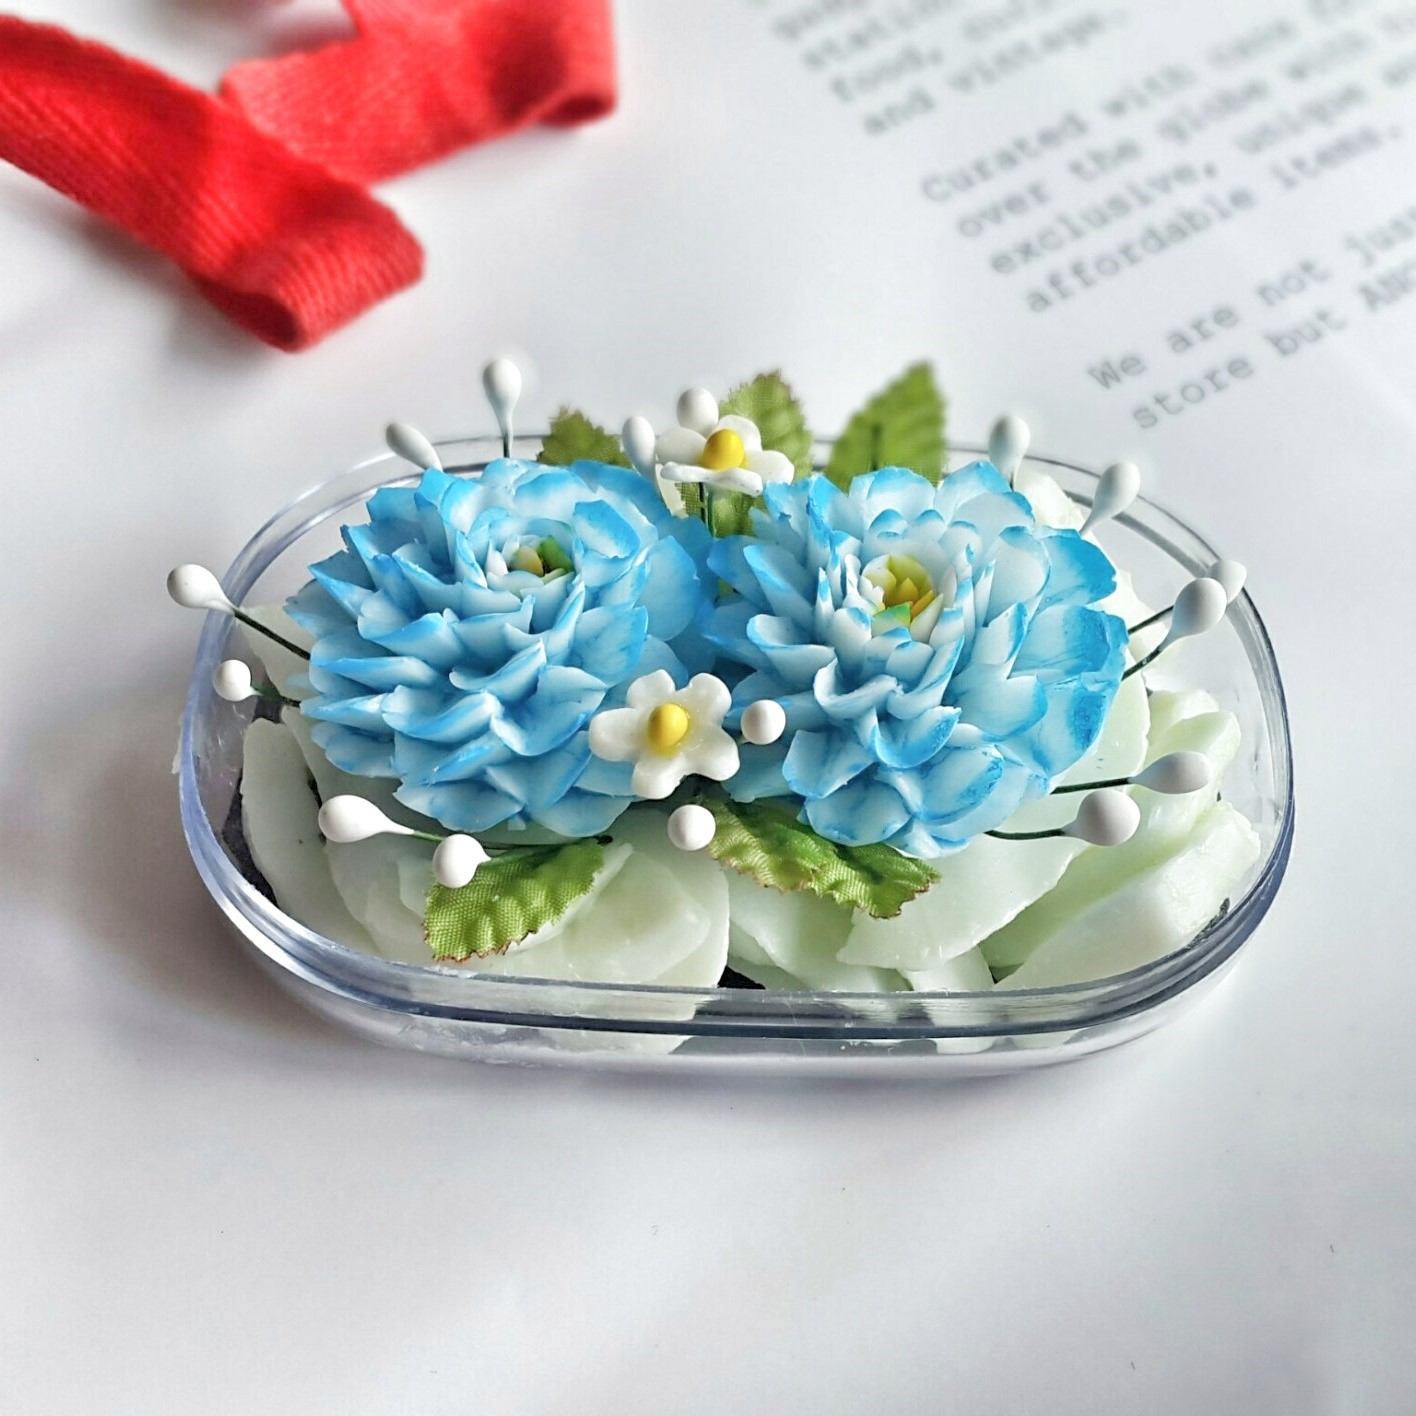 Double blue zinnia flowers hand carved in soap bar with jasmine picture of double blue zinnia flowers hand carved in soap bar with jasmine aroma essential oil izmirmasajfo